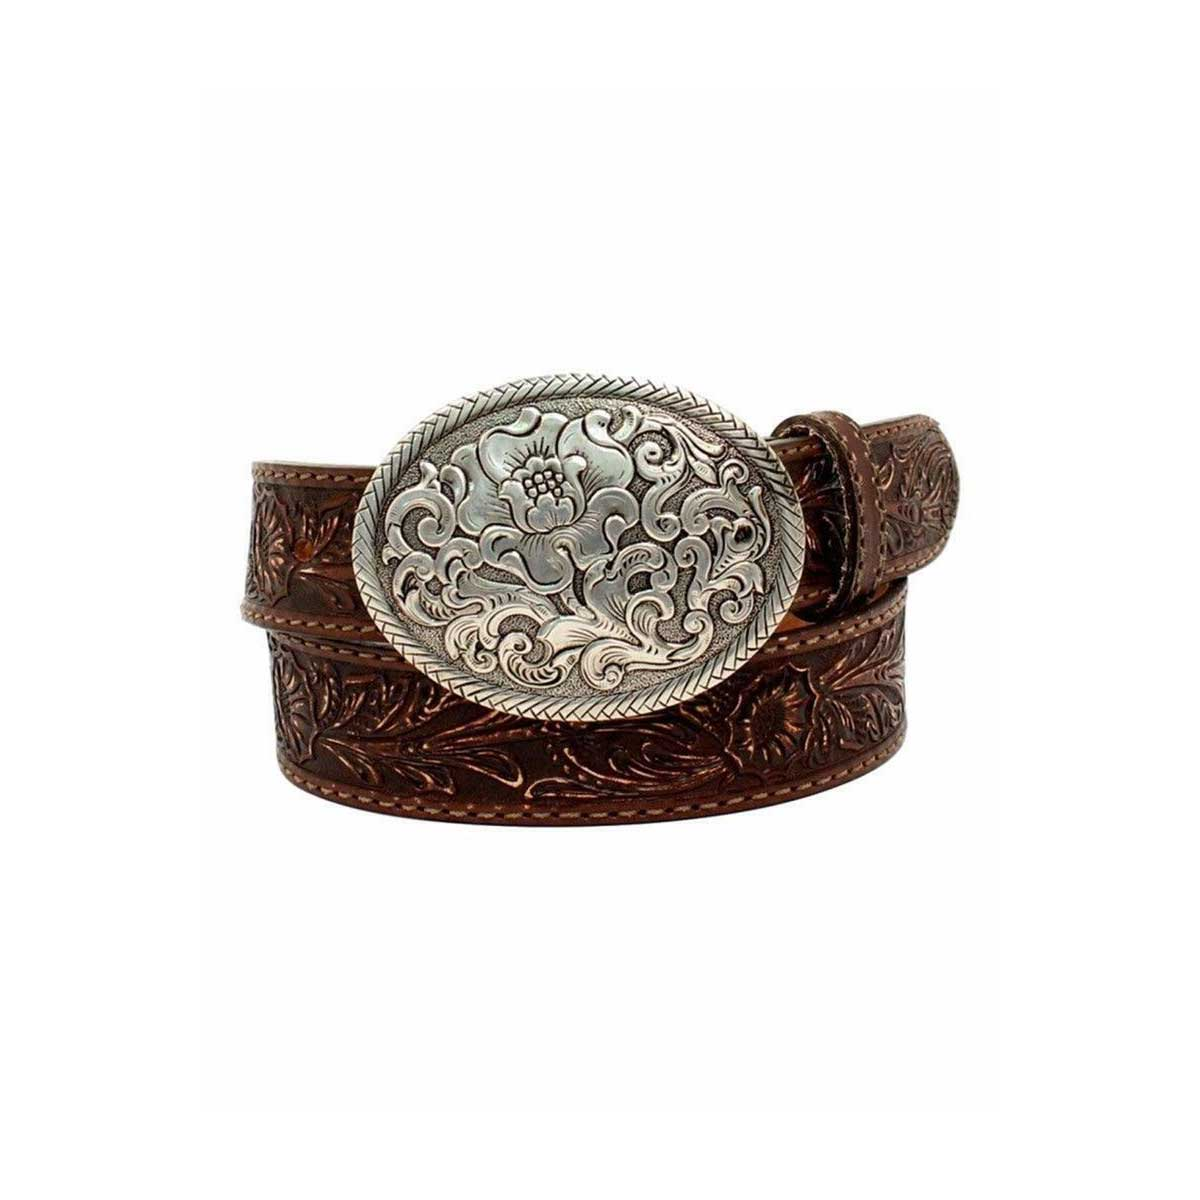 M & F Western Nocona Belle Forche Floral Embossed Belt and Matching Oval Buckle